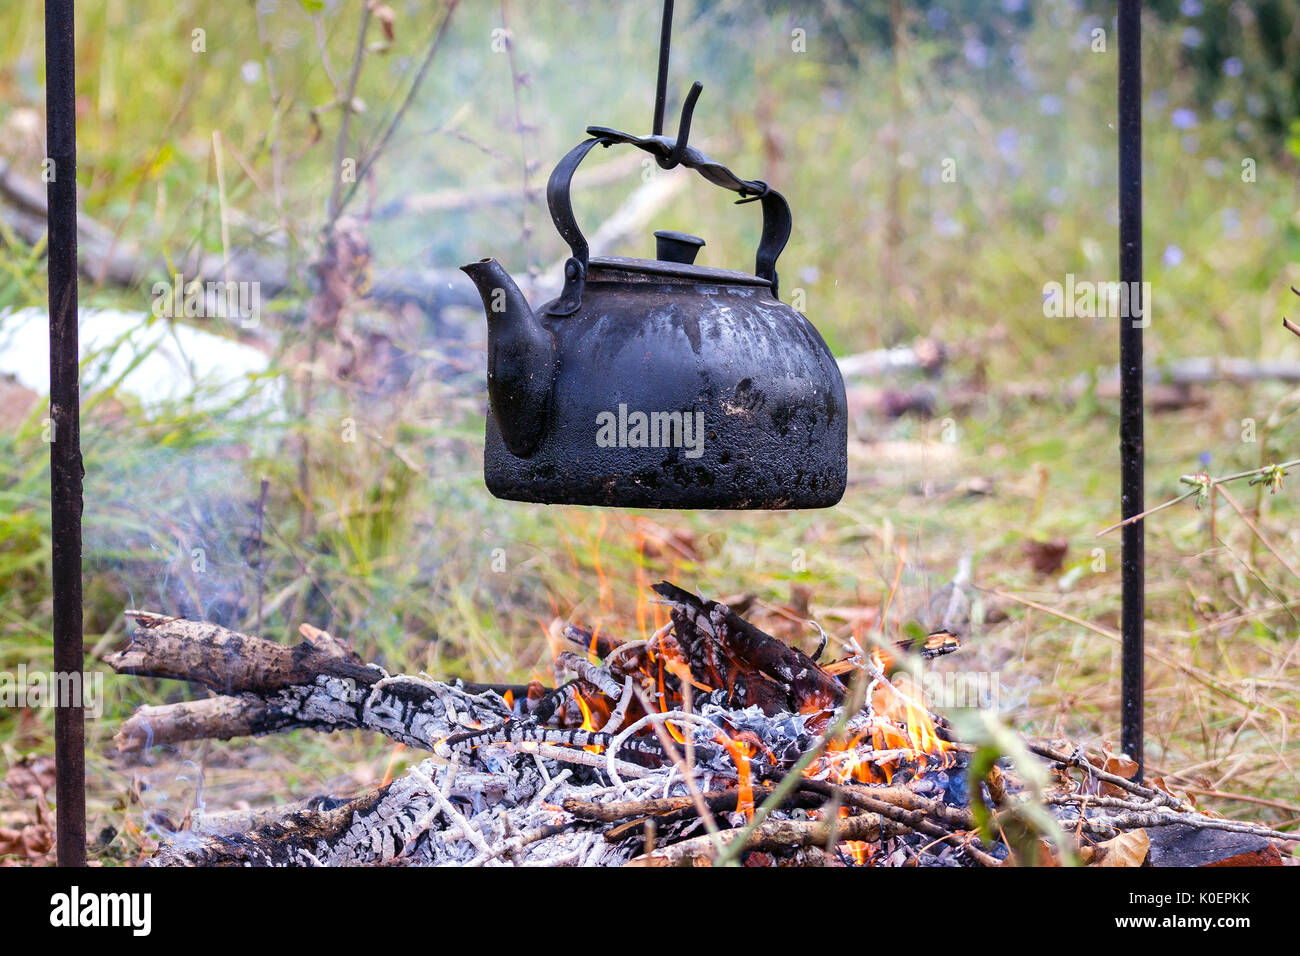 Old kettle over camp fire - Stock Image